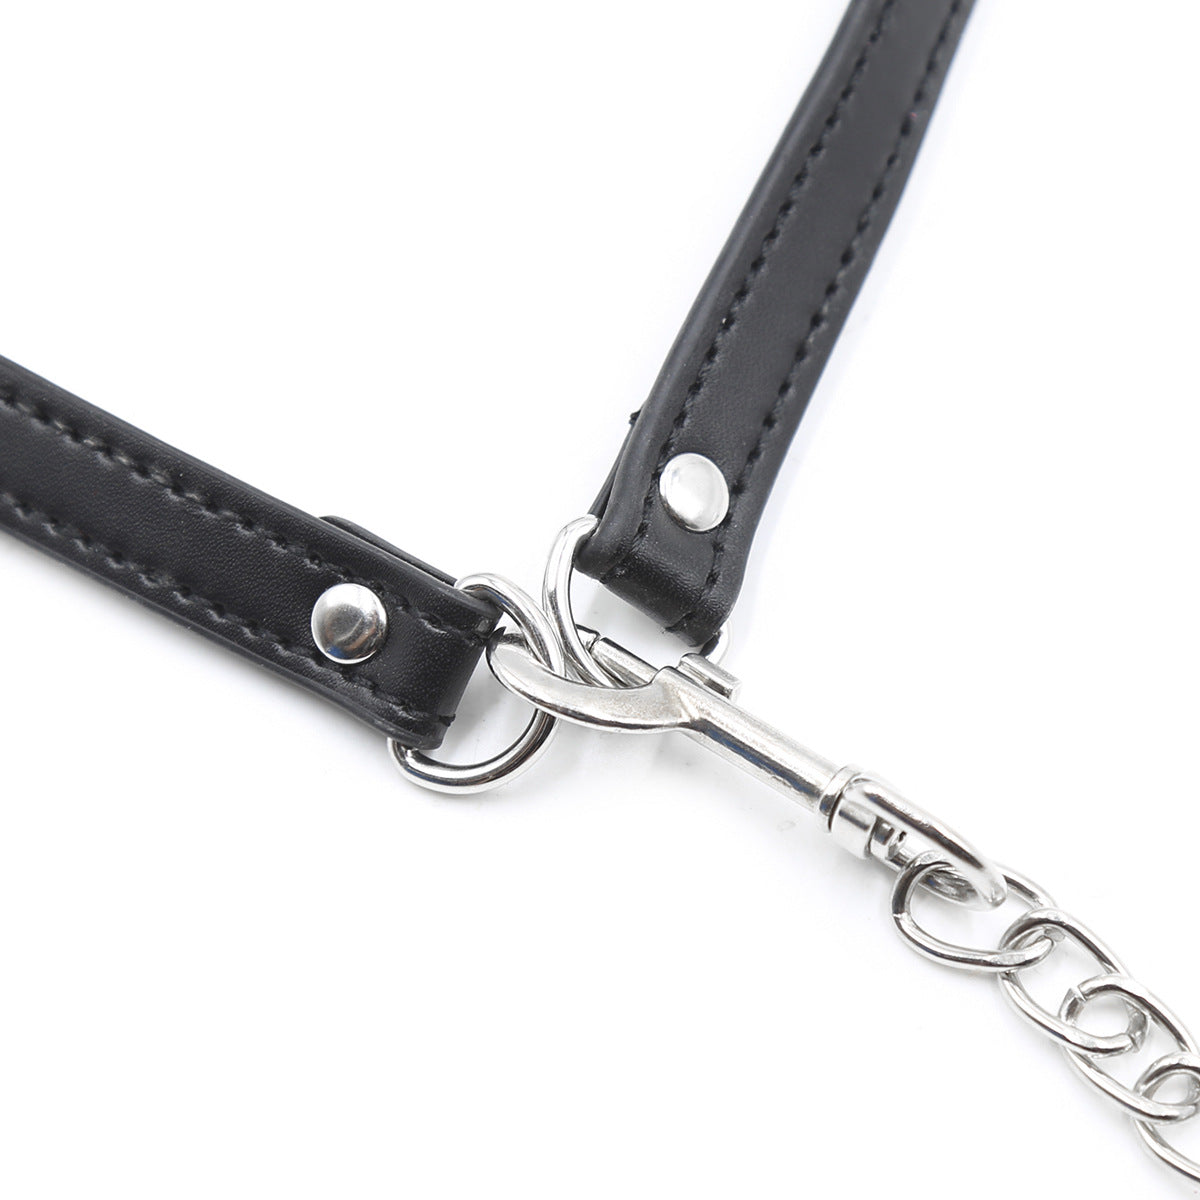 Fetish Mouth Gag Collar & Leash Chain Bondage Restraints Set